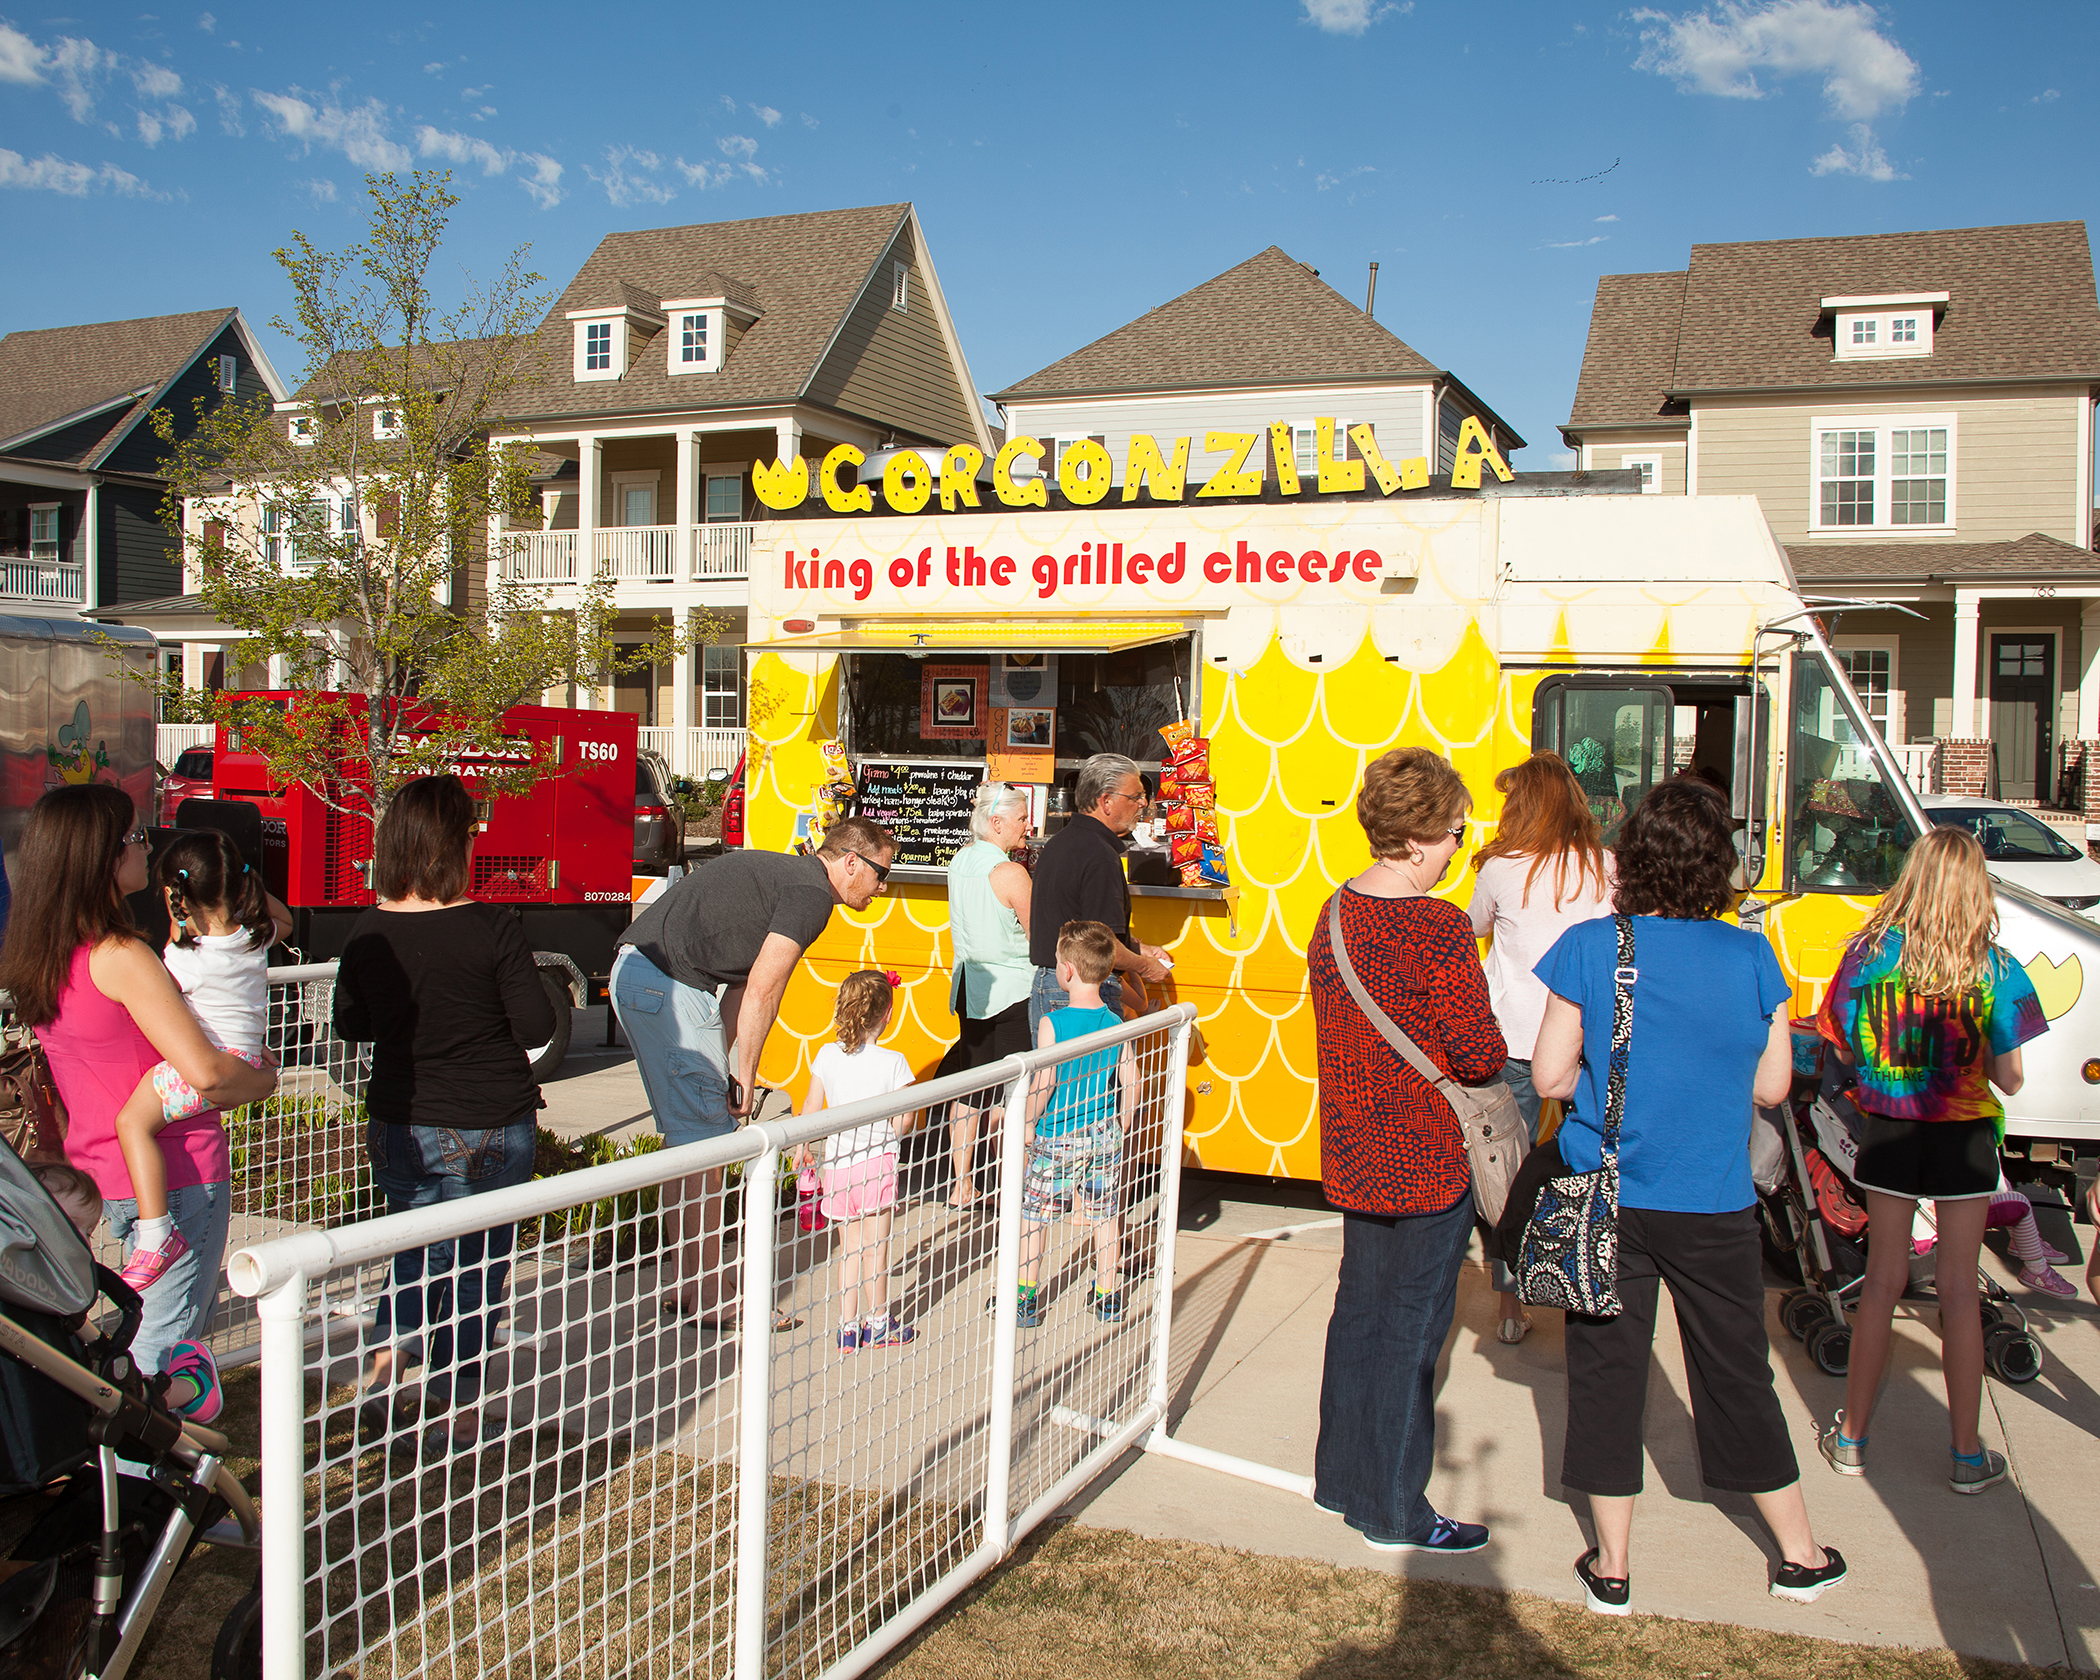 Families enjoy an outdoor dinner at a food truck in Old Town Coppell.